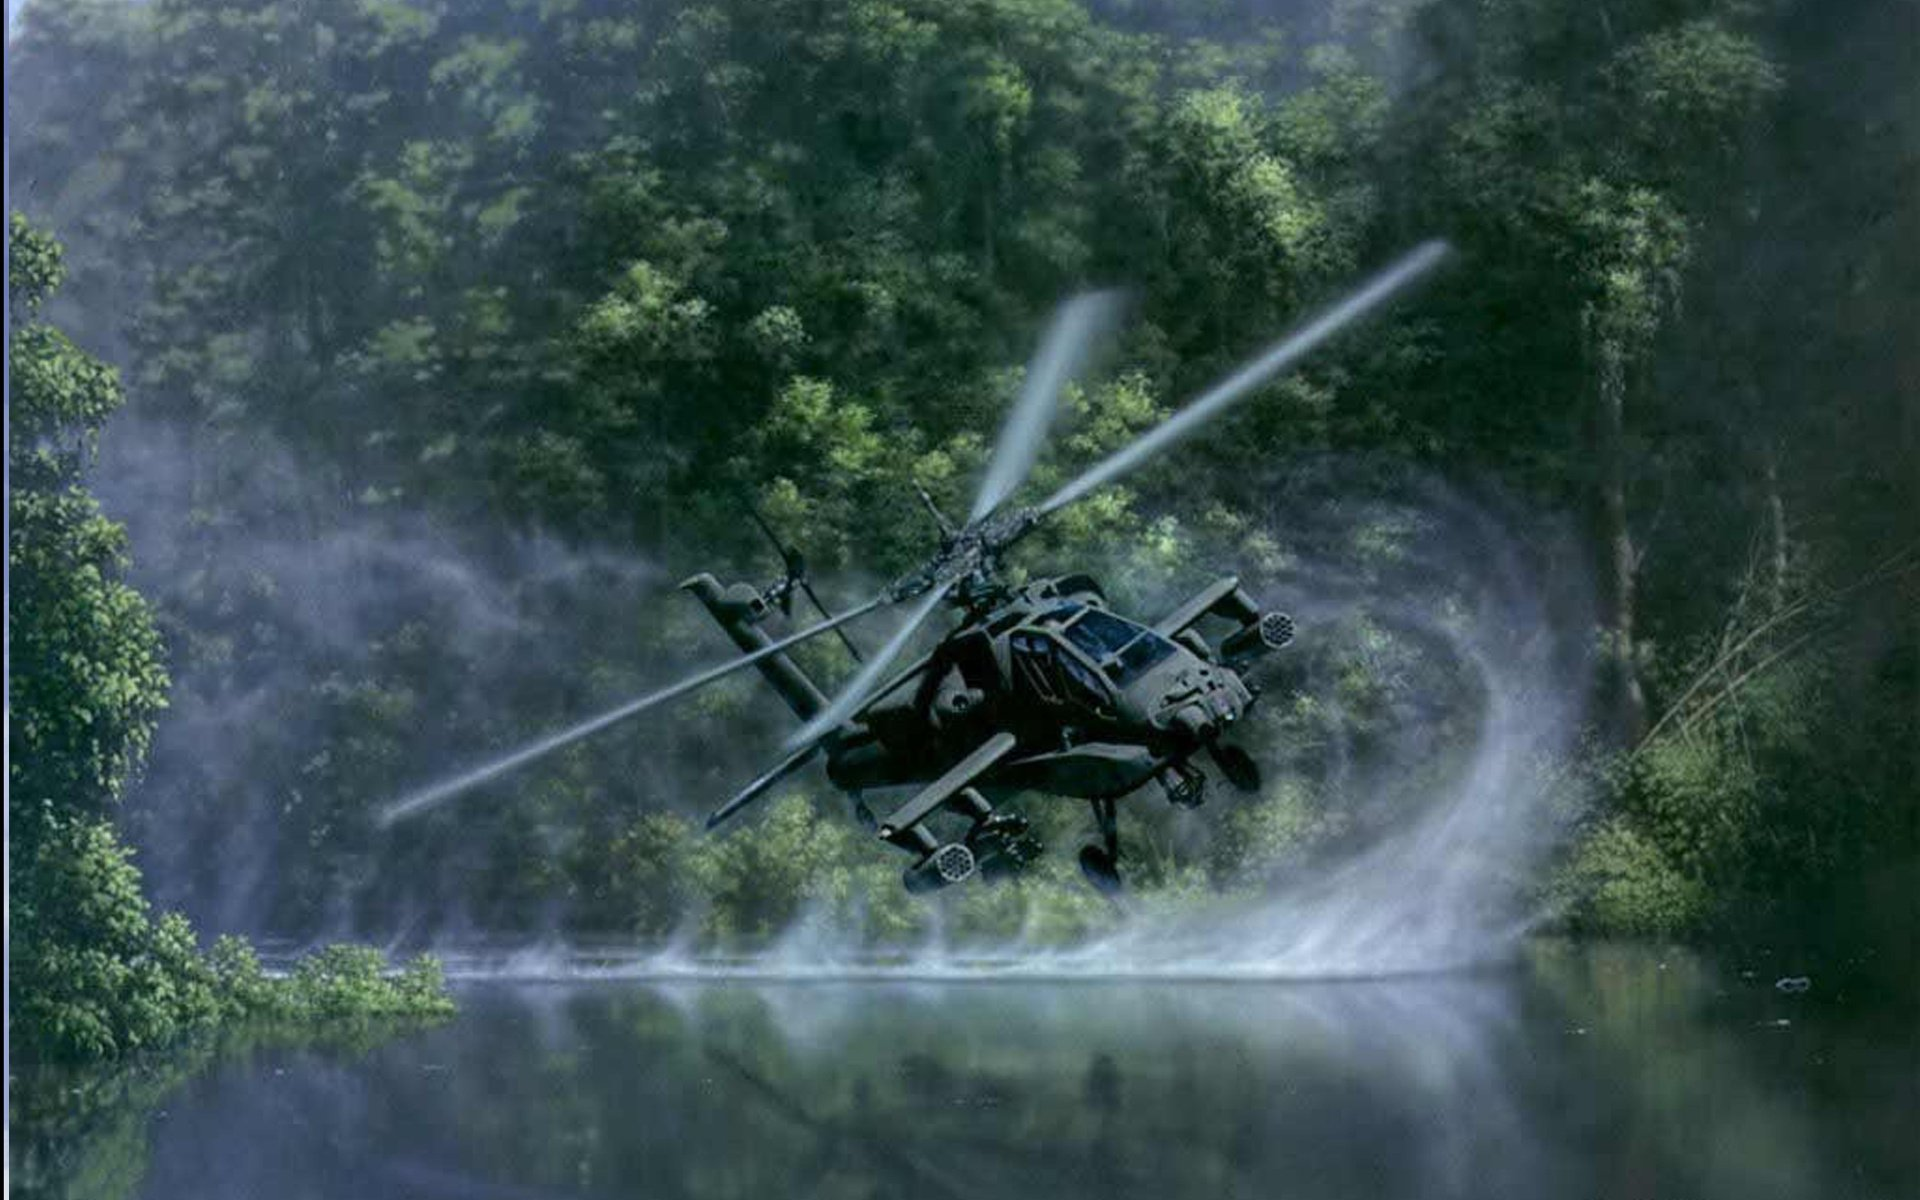 boeing ah-64 apache full hd wallpaper and background | 1920x1200